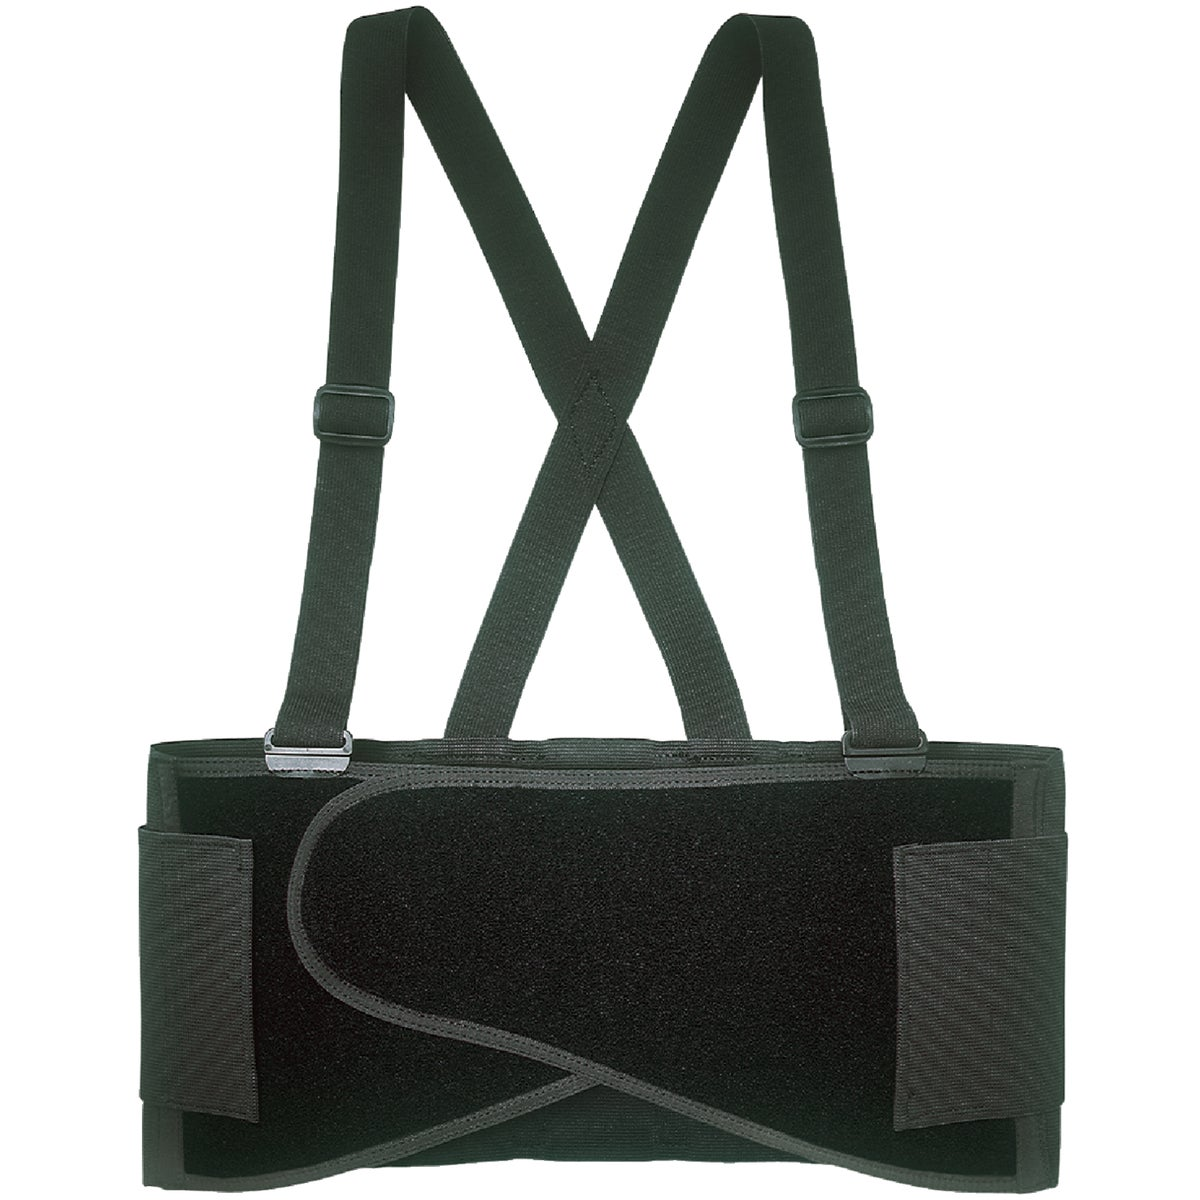 X-LG BACK SUPPORT BELT